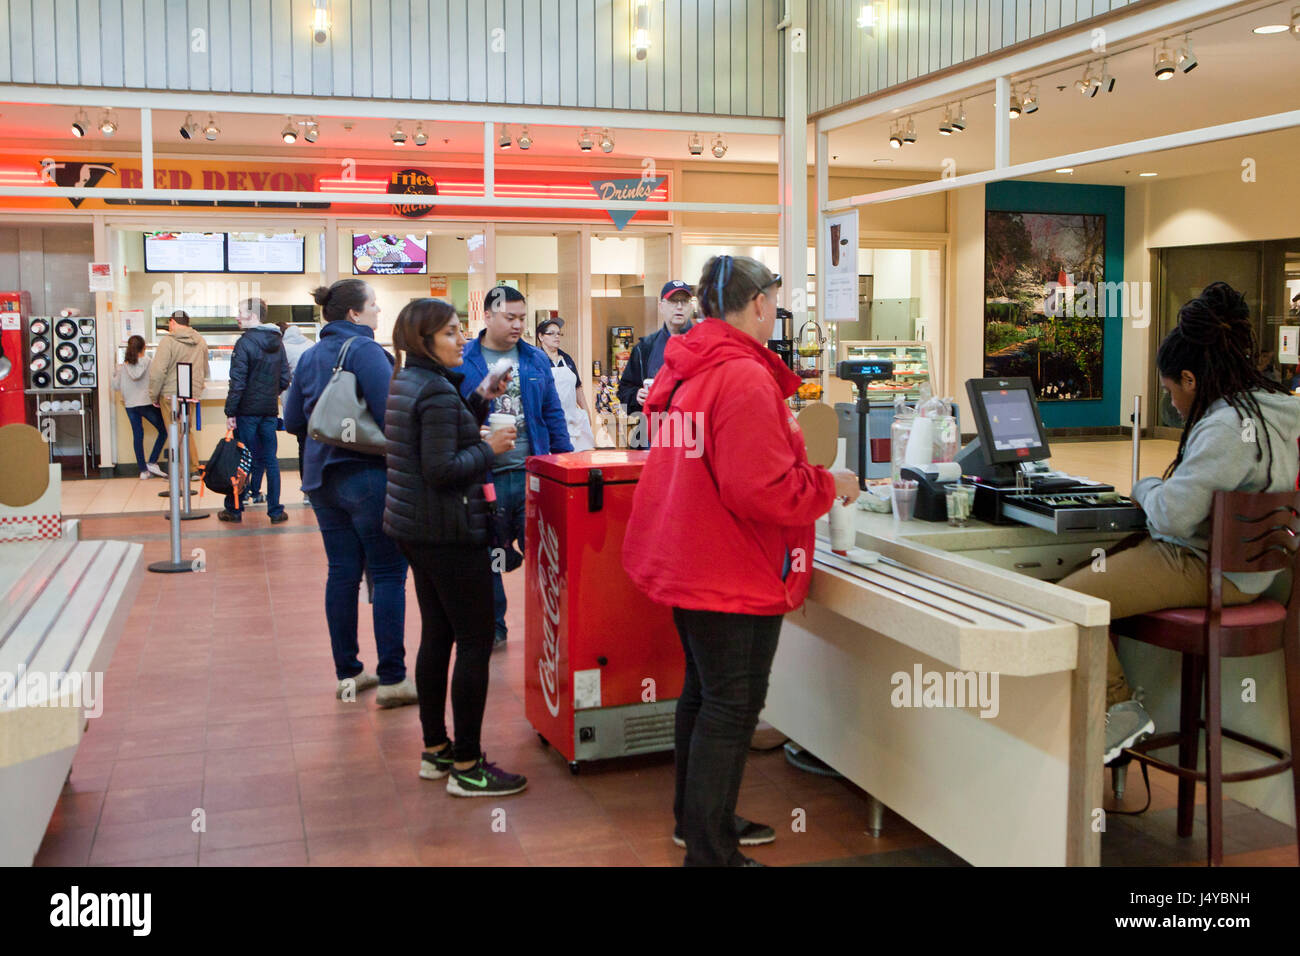 Food court checkout in a building - USA - Stock Image